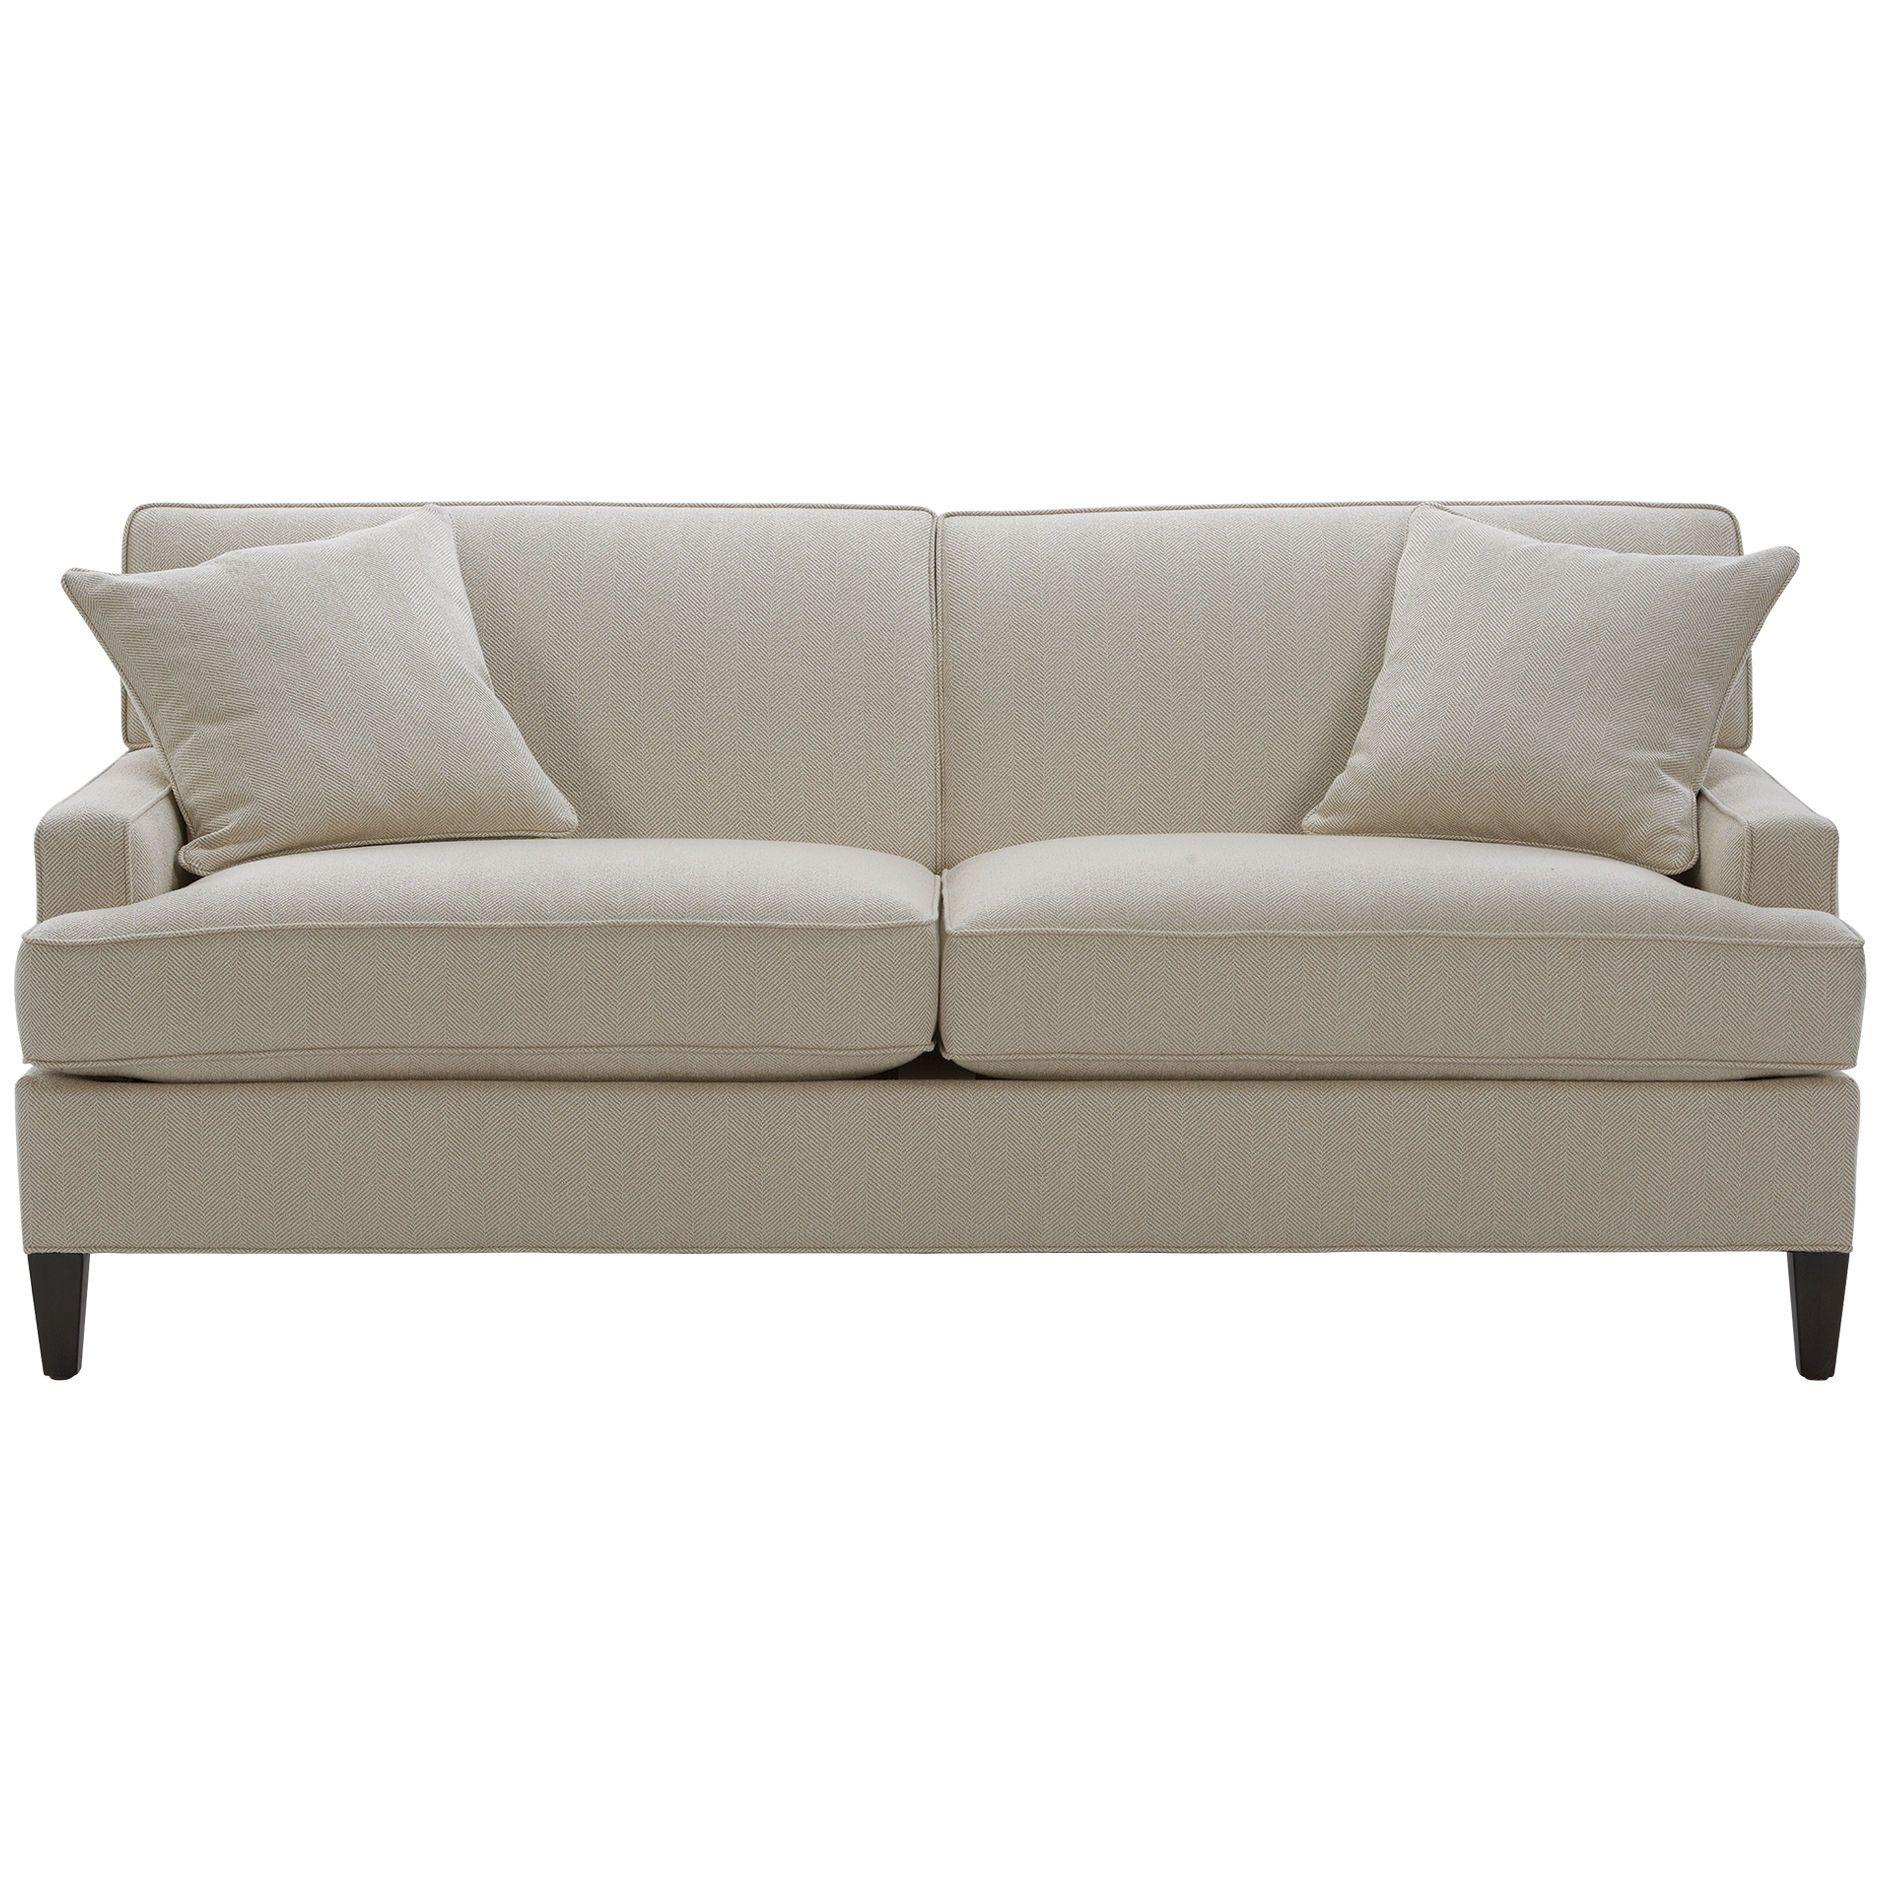 Bryant Sofa, Turner/ Oatmeal - Ethan Allen US $1499 add more for ...